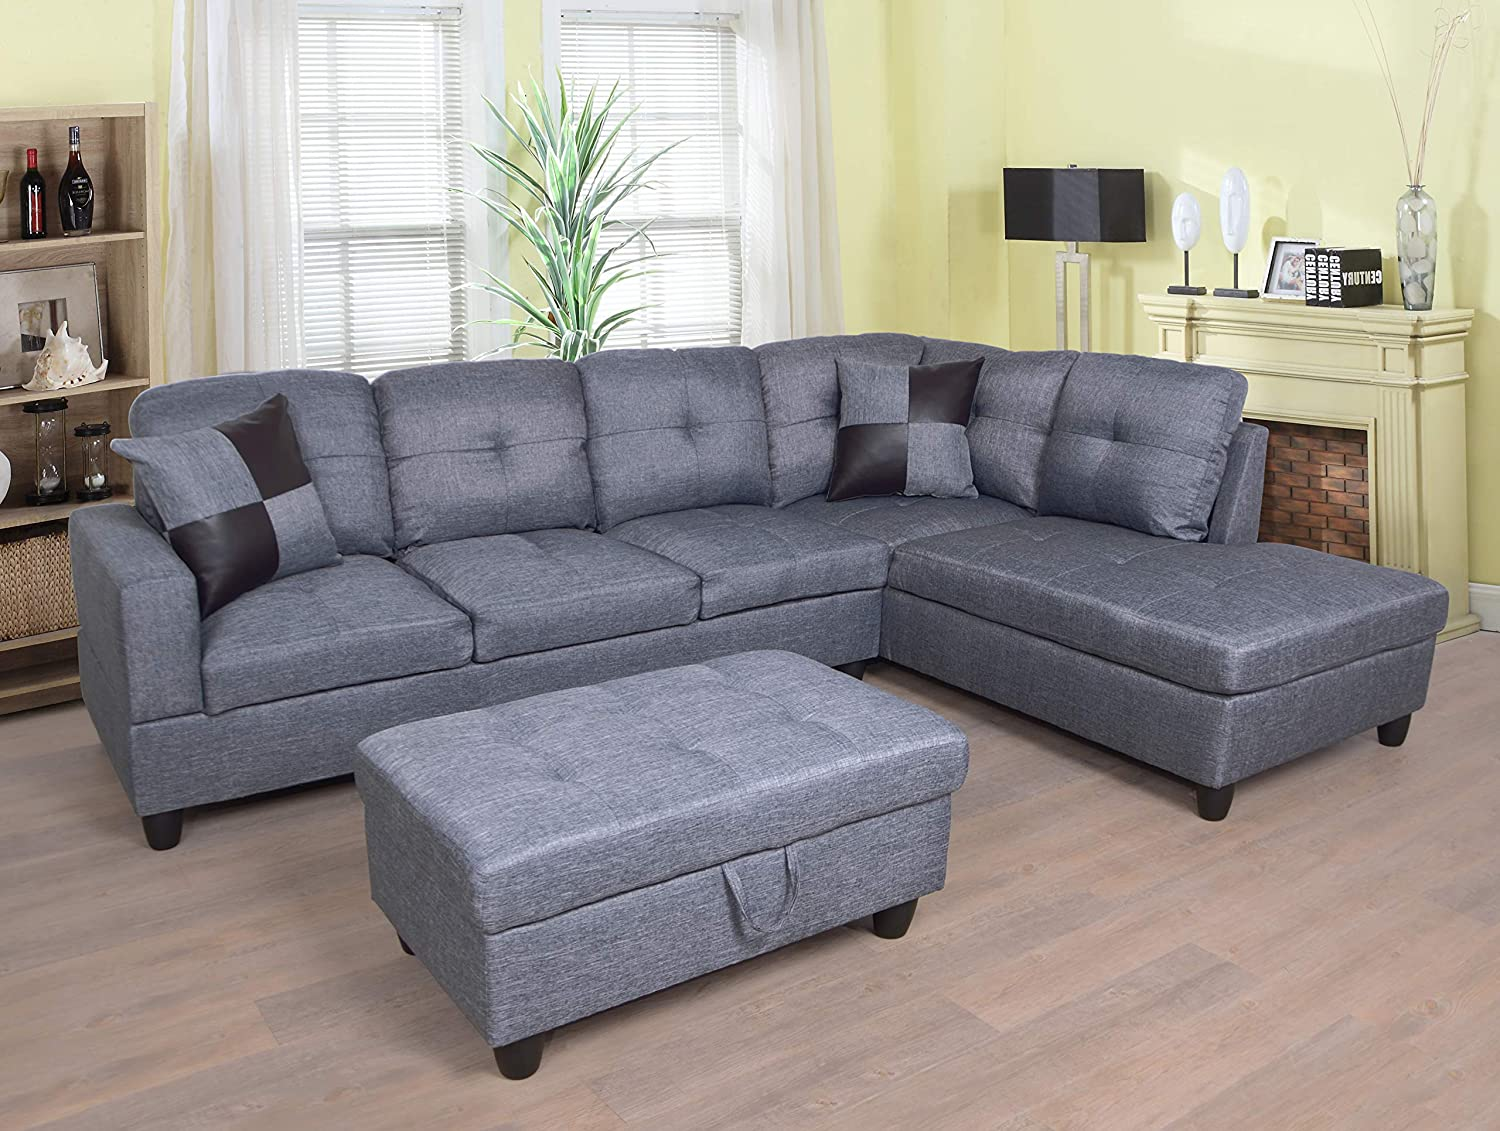 Marvelous Amazon Com Lifestyle Furniture Right Facing 3Pc Sectional Alphanode Cool Chair Designs And Ideas Alphanodeonline